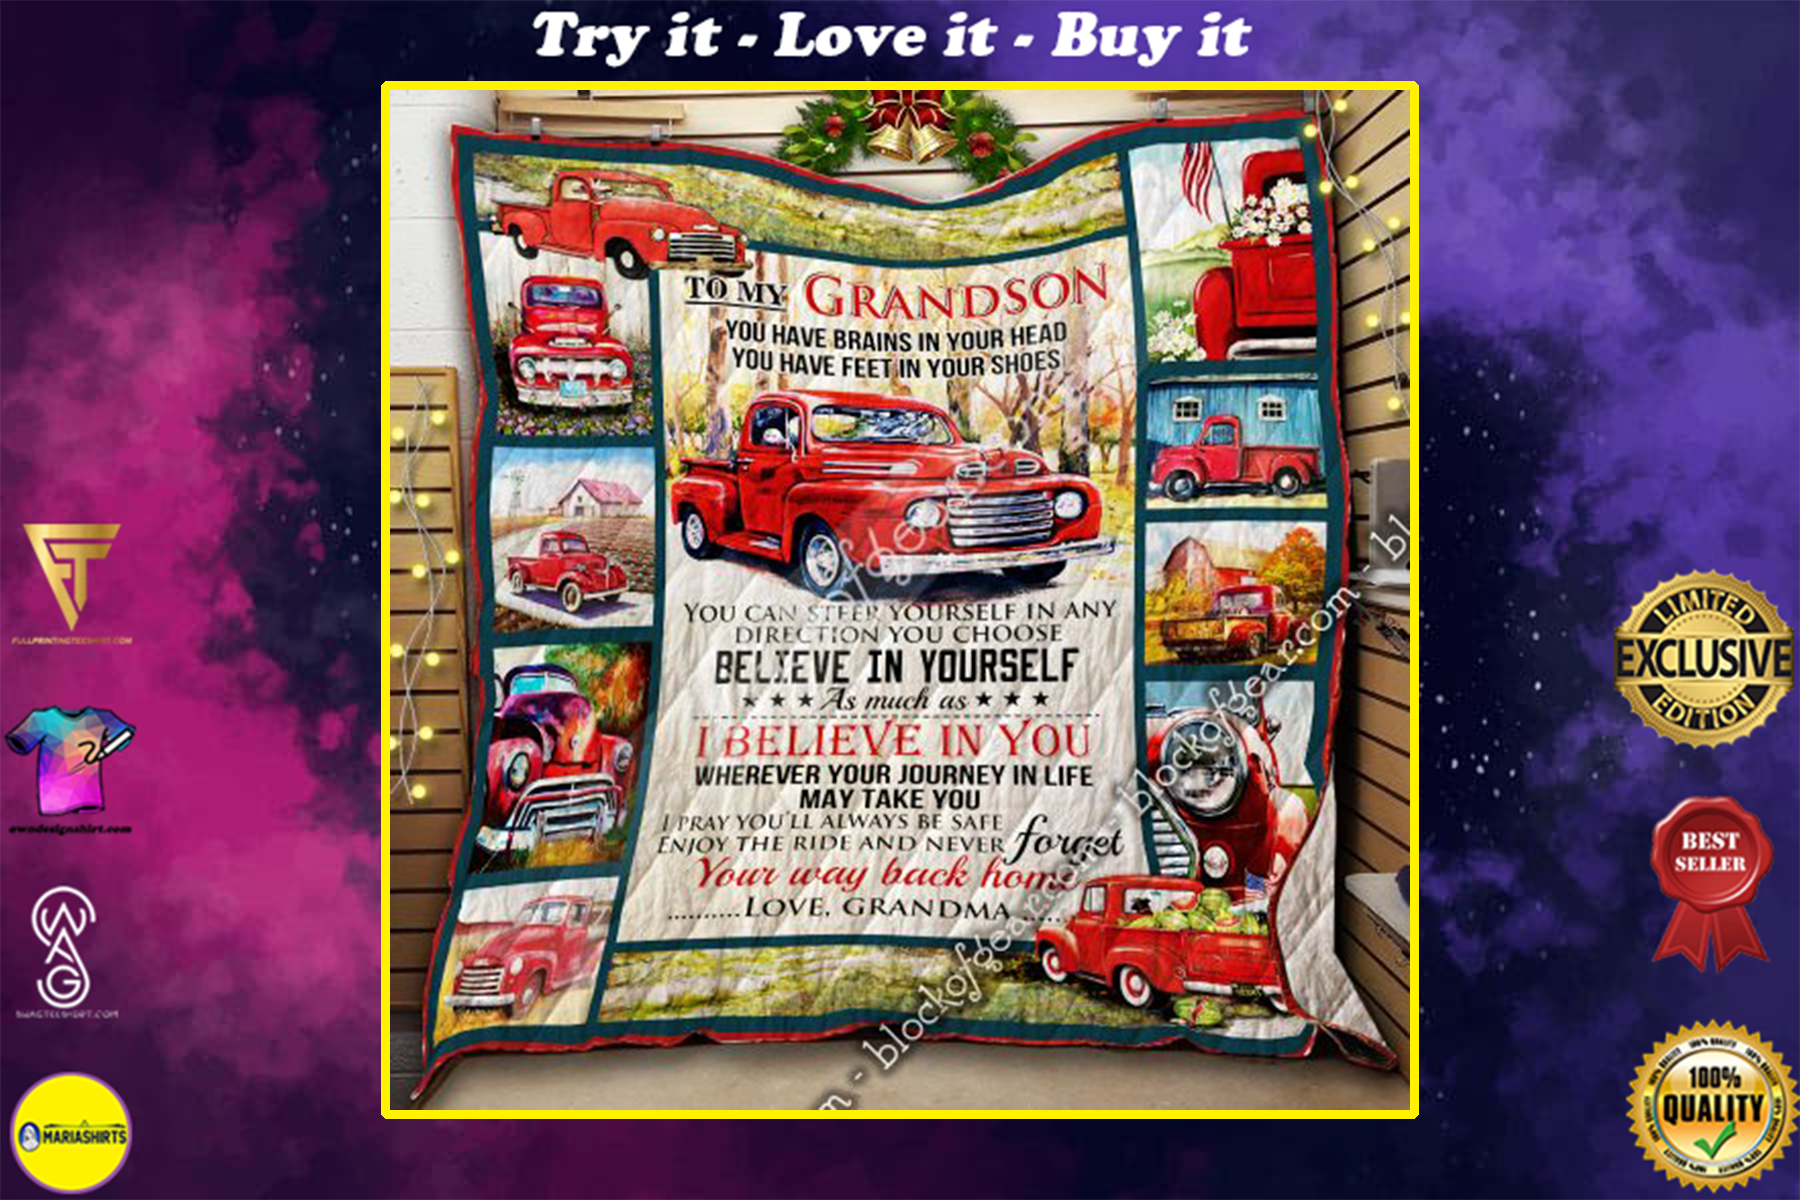 red truck to my grandson i believe in you and never forget your way back home your grandma quilt